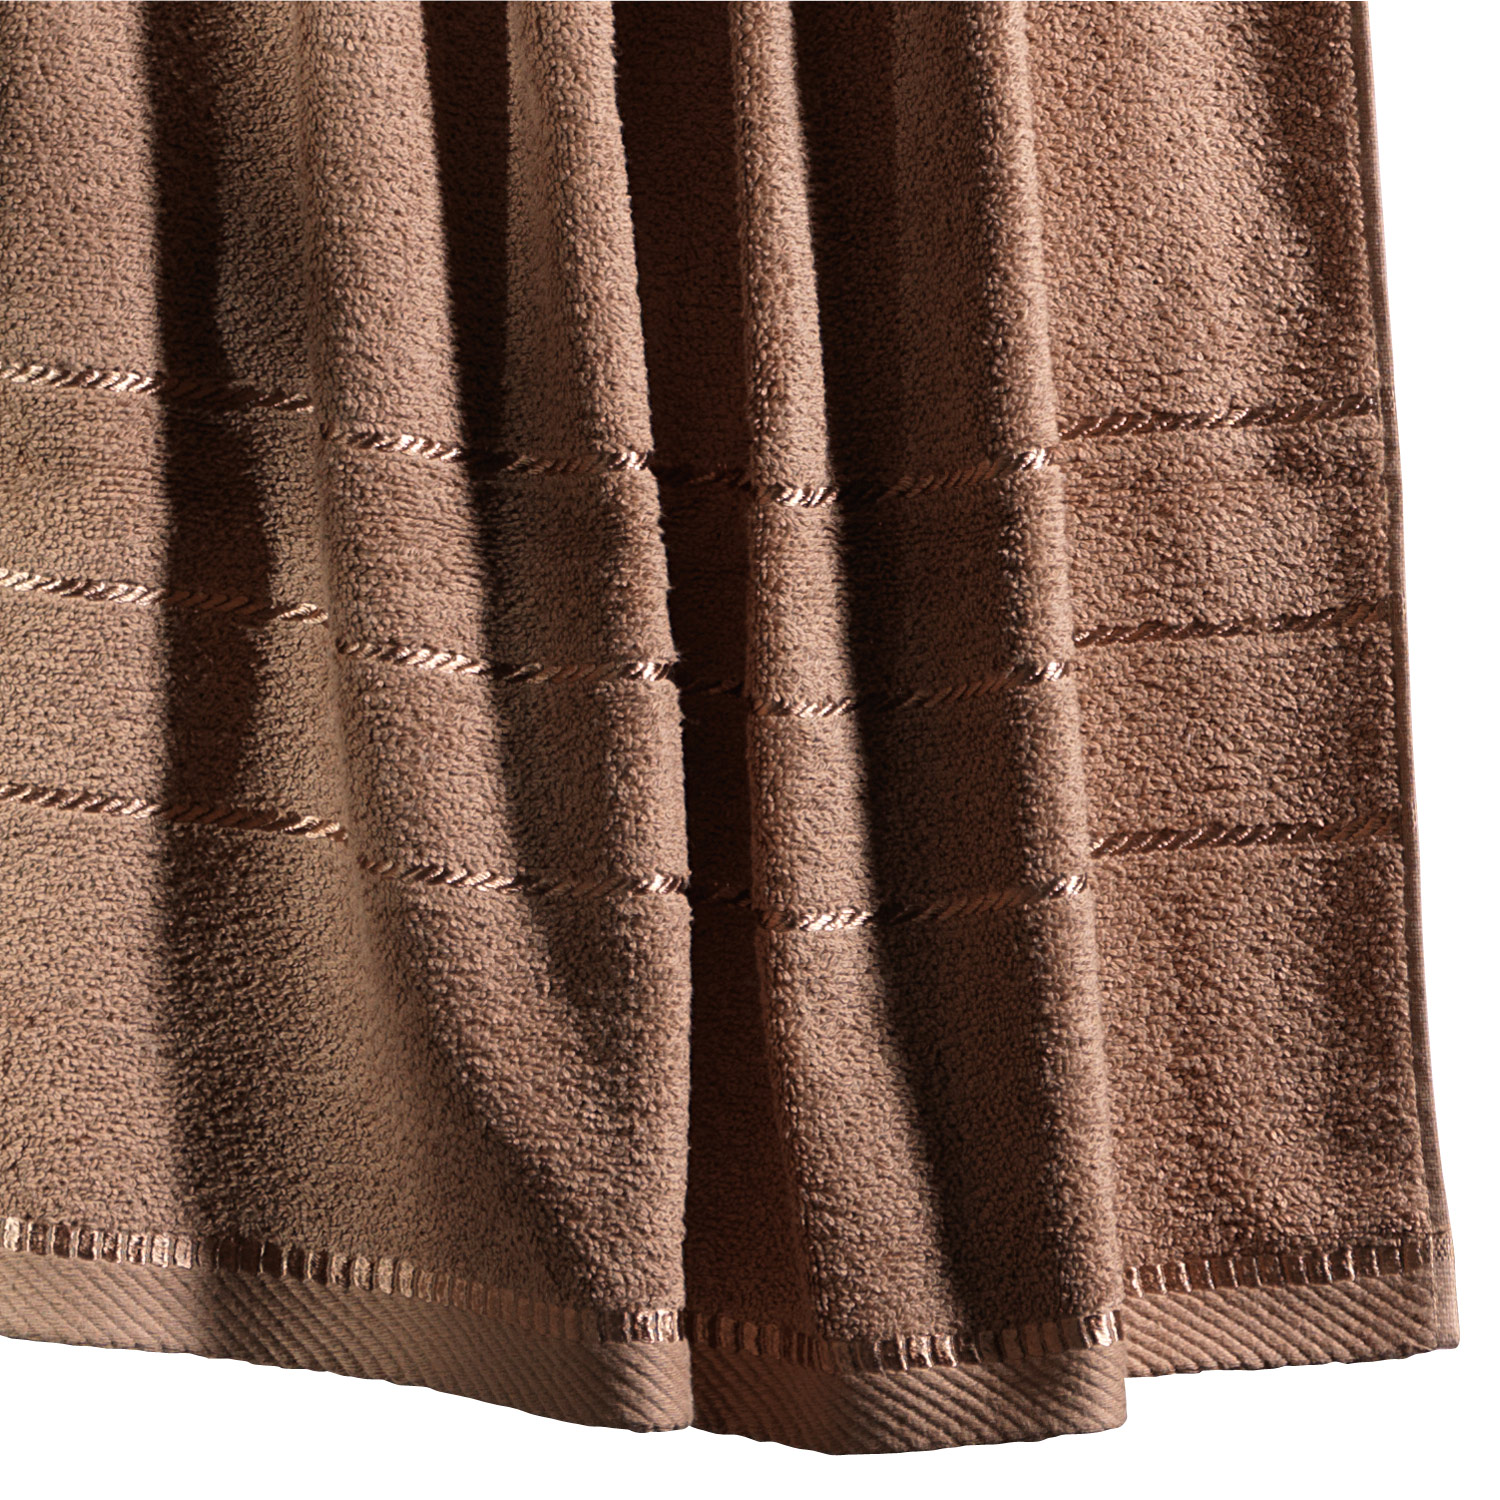 Duschtuch  BANY 1, Beige, 70x140 cm